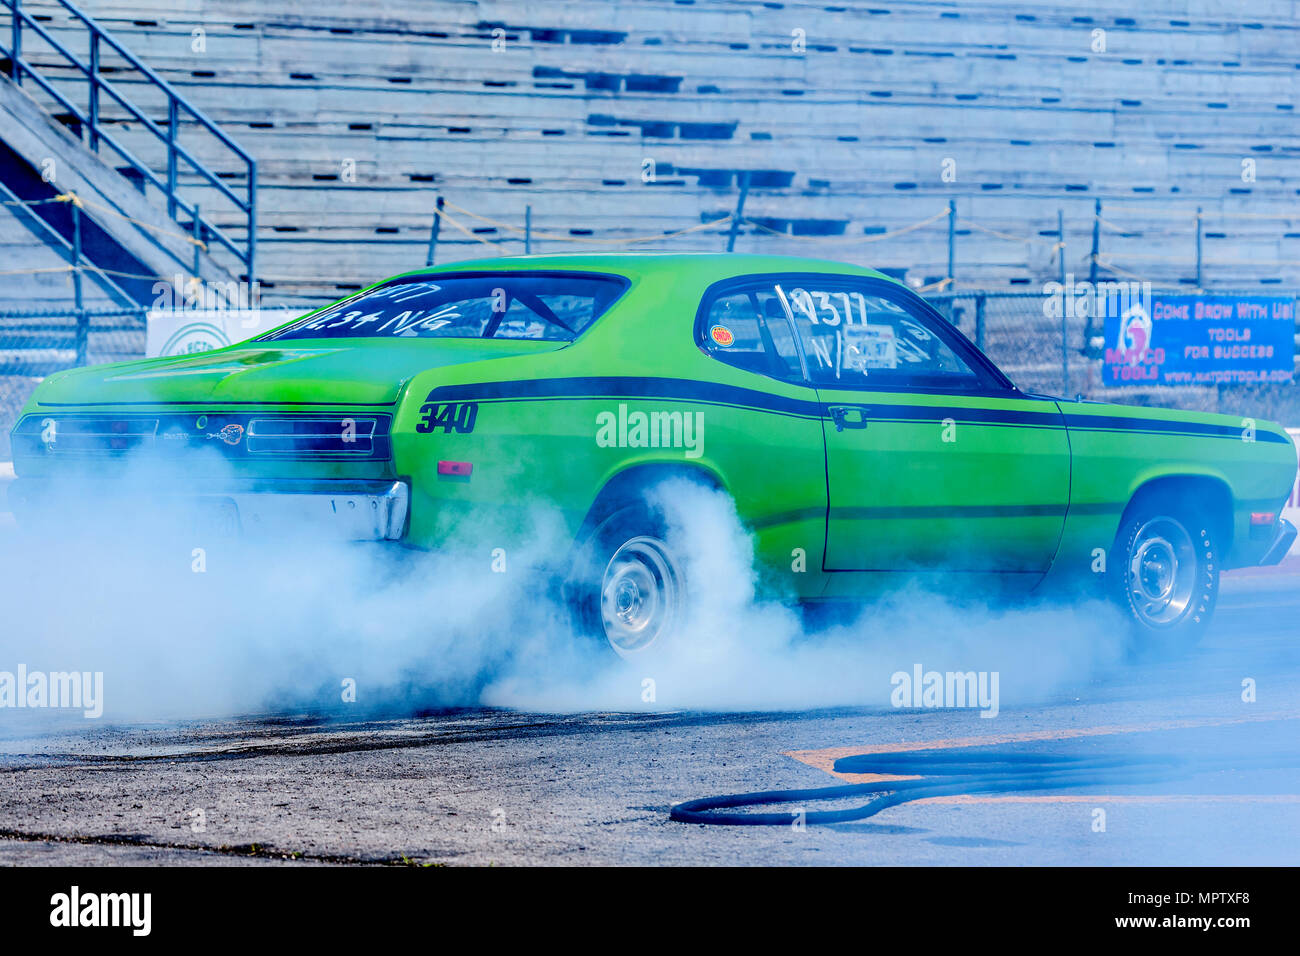 Muscle Car Performing A Burnout At Racetrack Stock Photo 186173772